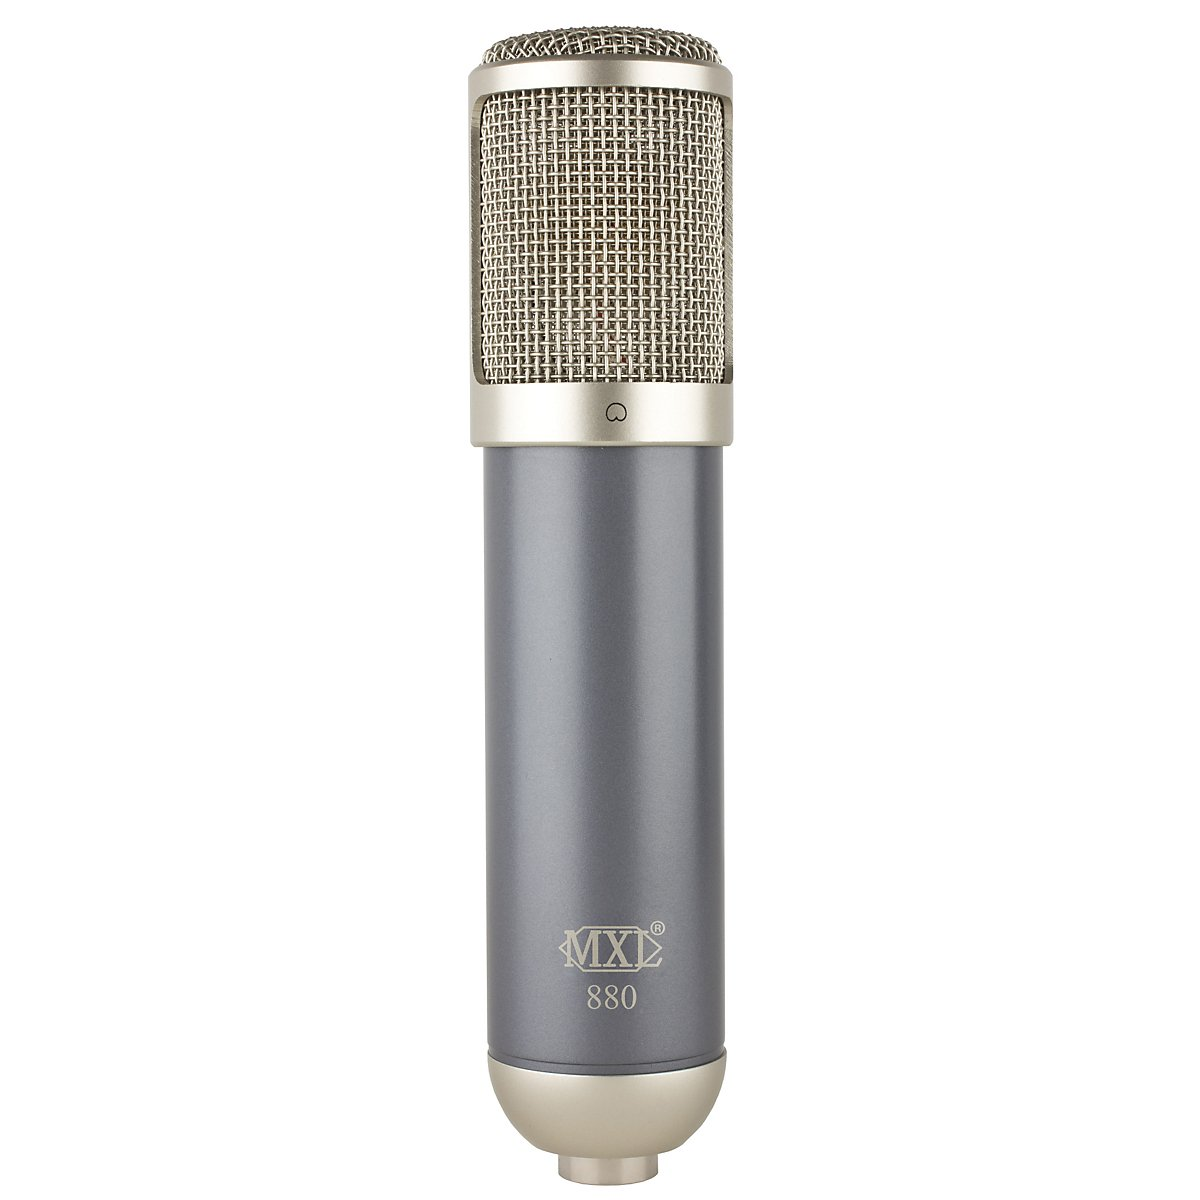 Amazon.com: MXL 880 Vocal Condenser Microphone: Musical Instruments